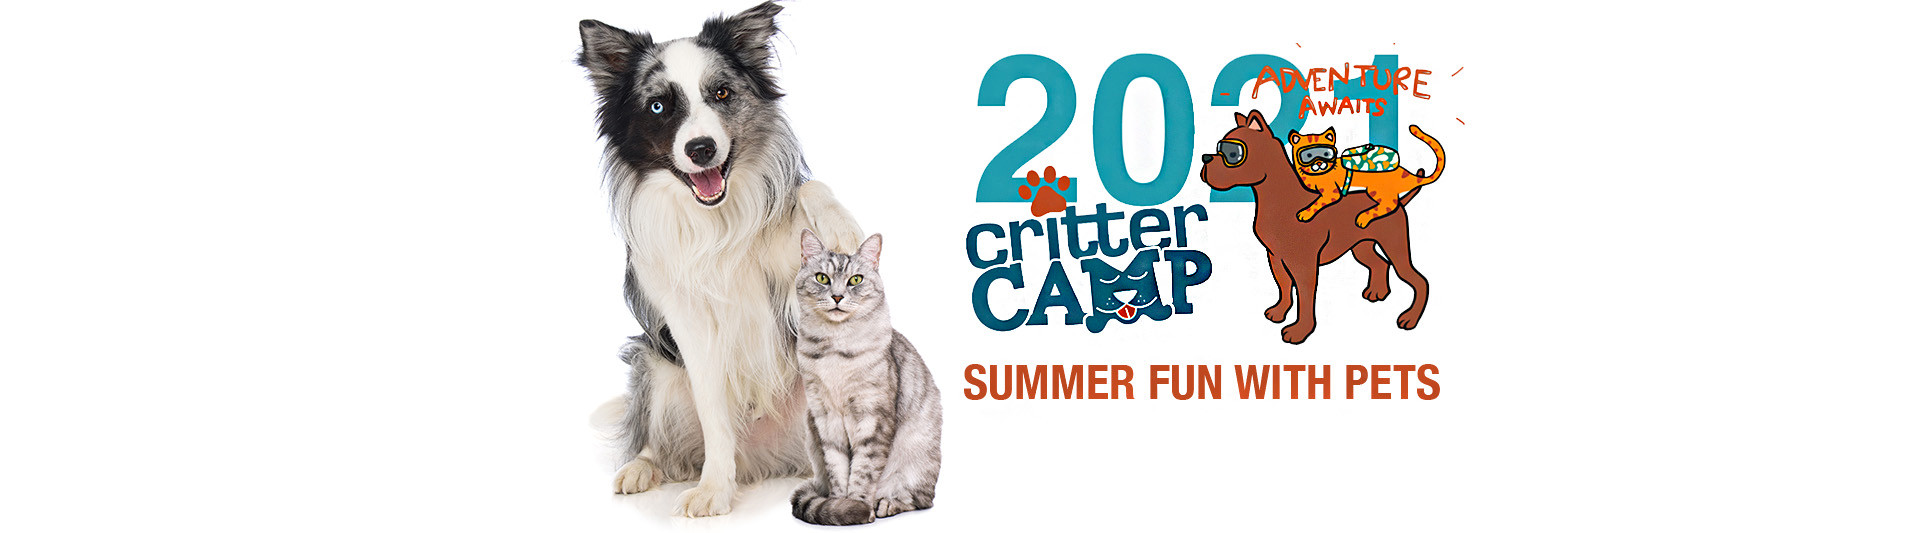 Critter Camp 2021 - summer camp with pets!